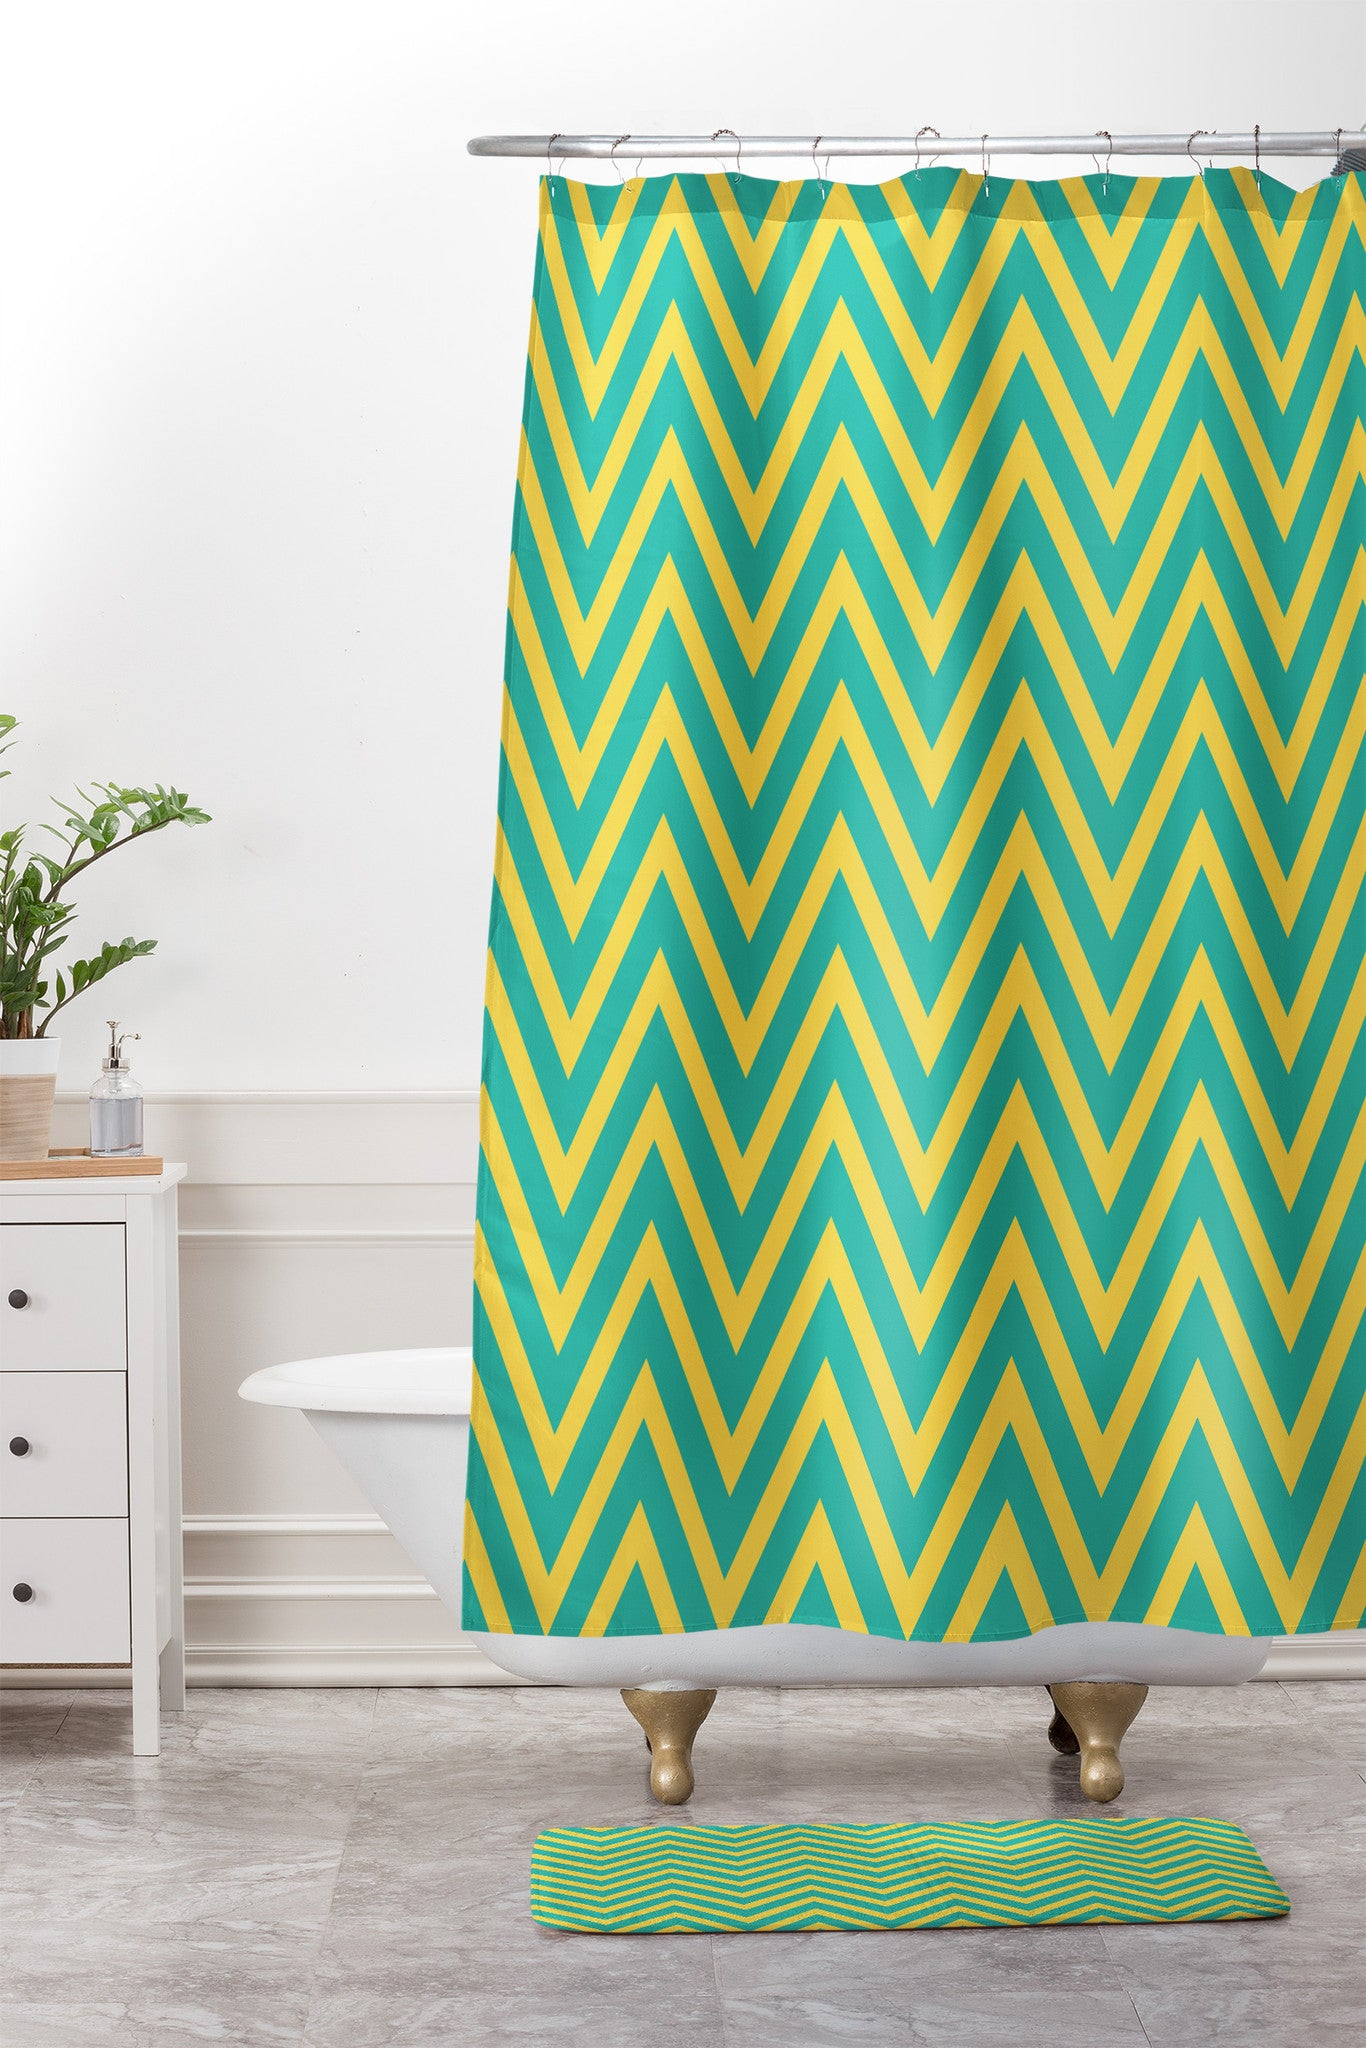 Allyson Johnson Teal Chartreuse Chevron Shower Curtain And Mat